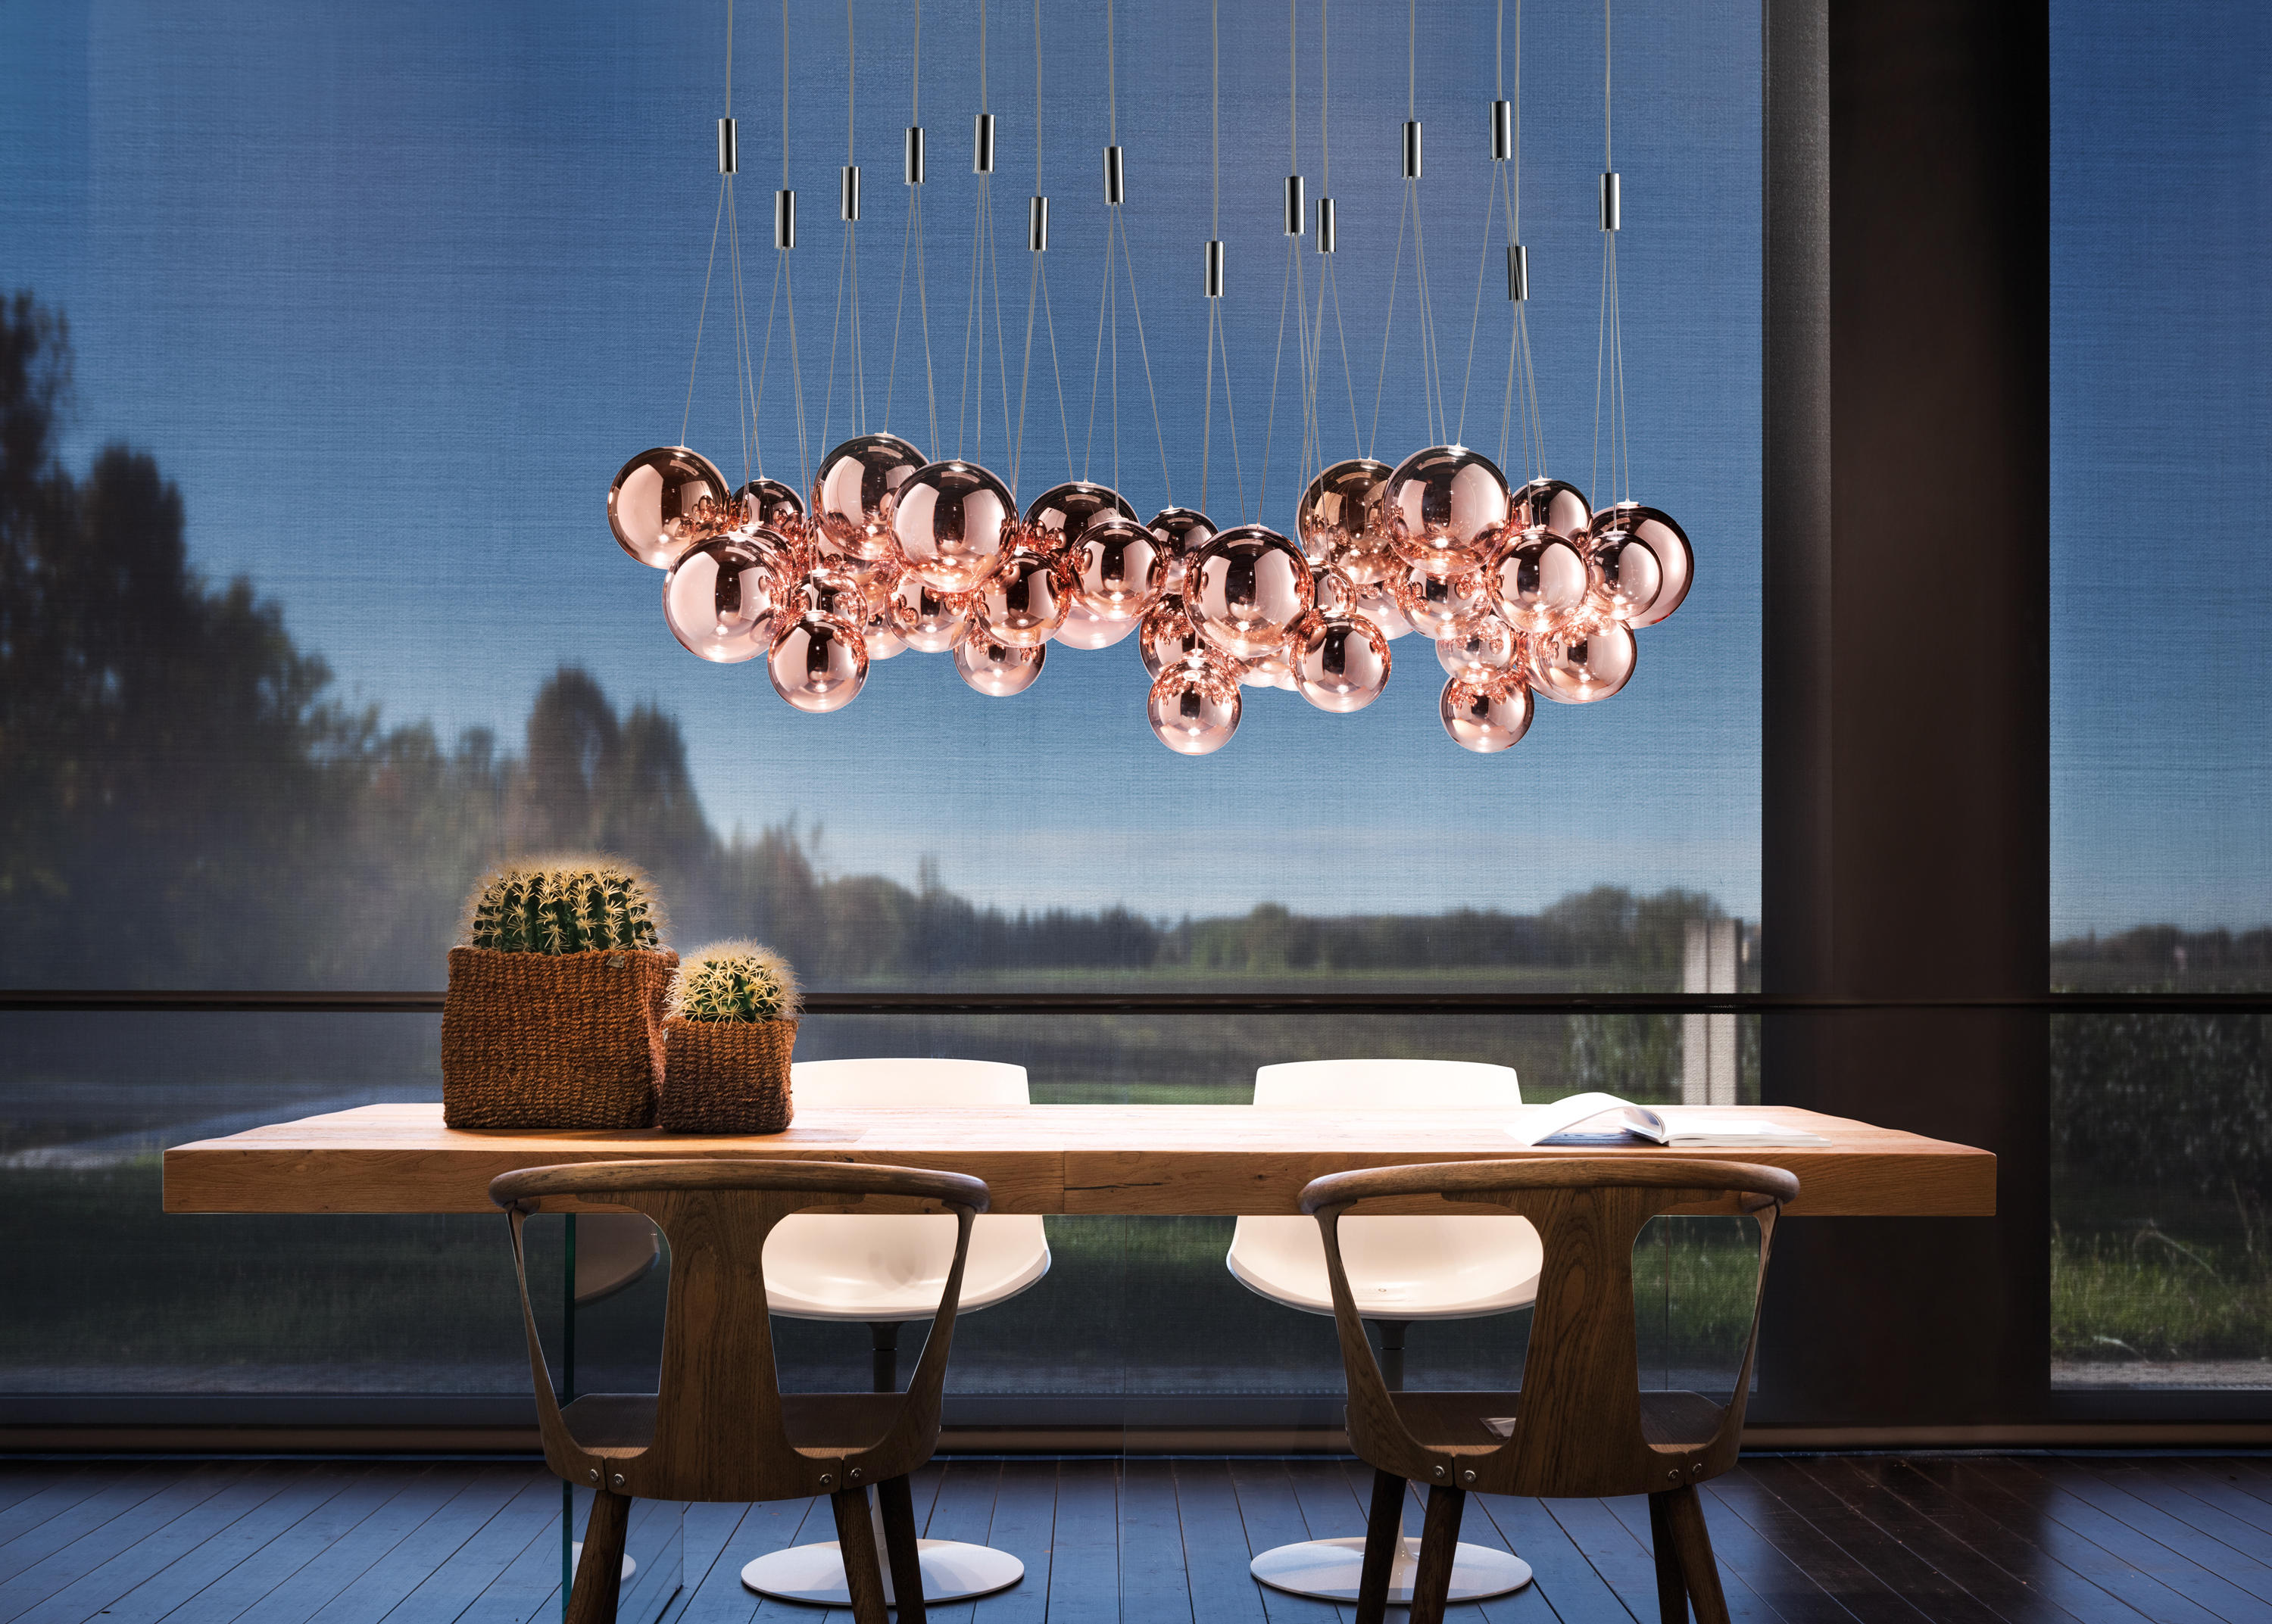 Random Suspended Lights From Studio Italia Design Architonic,How To Do Cool Tie Dye Designs